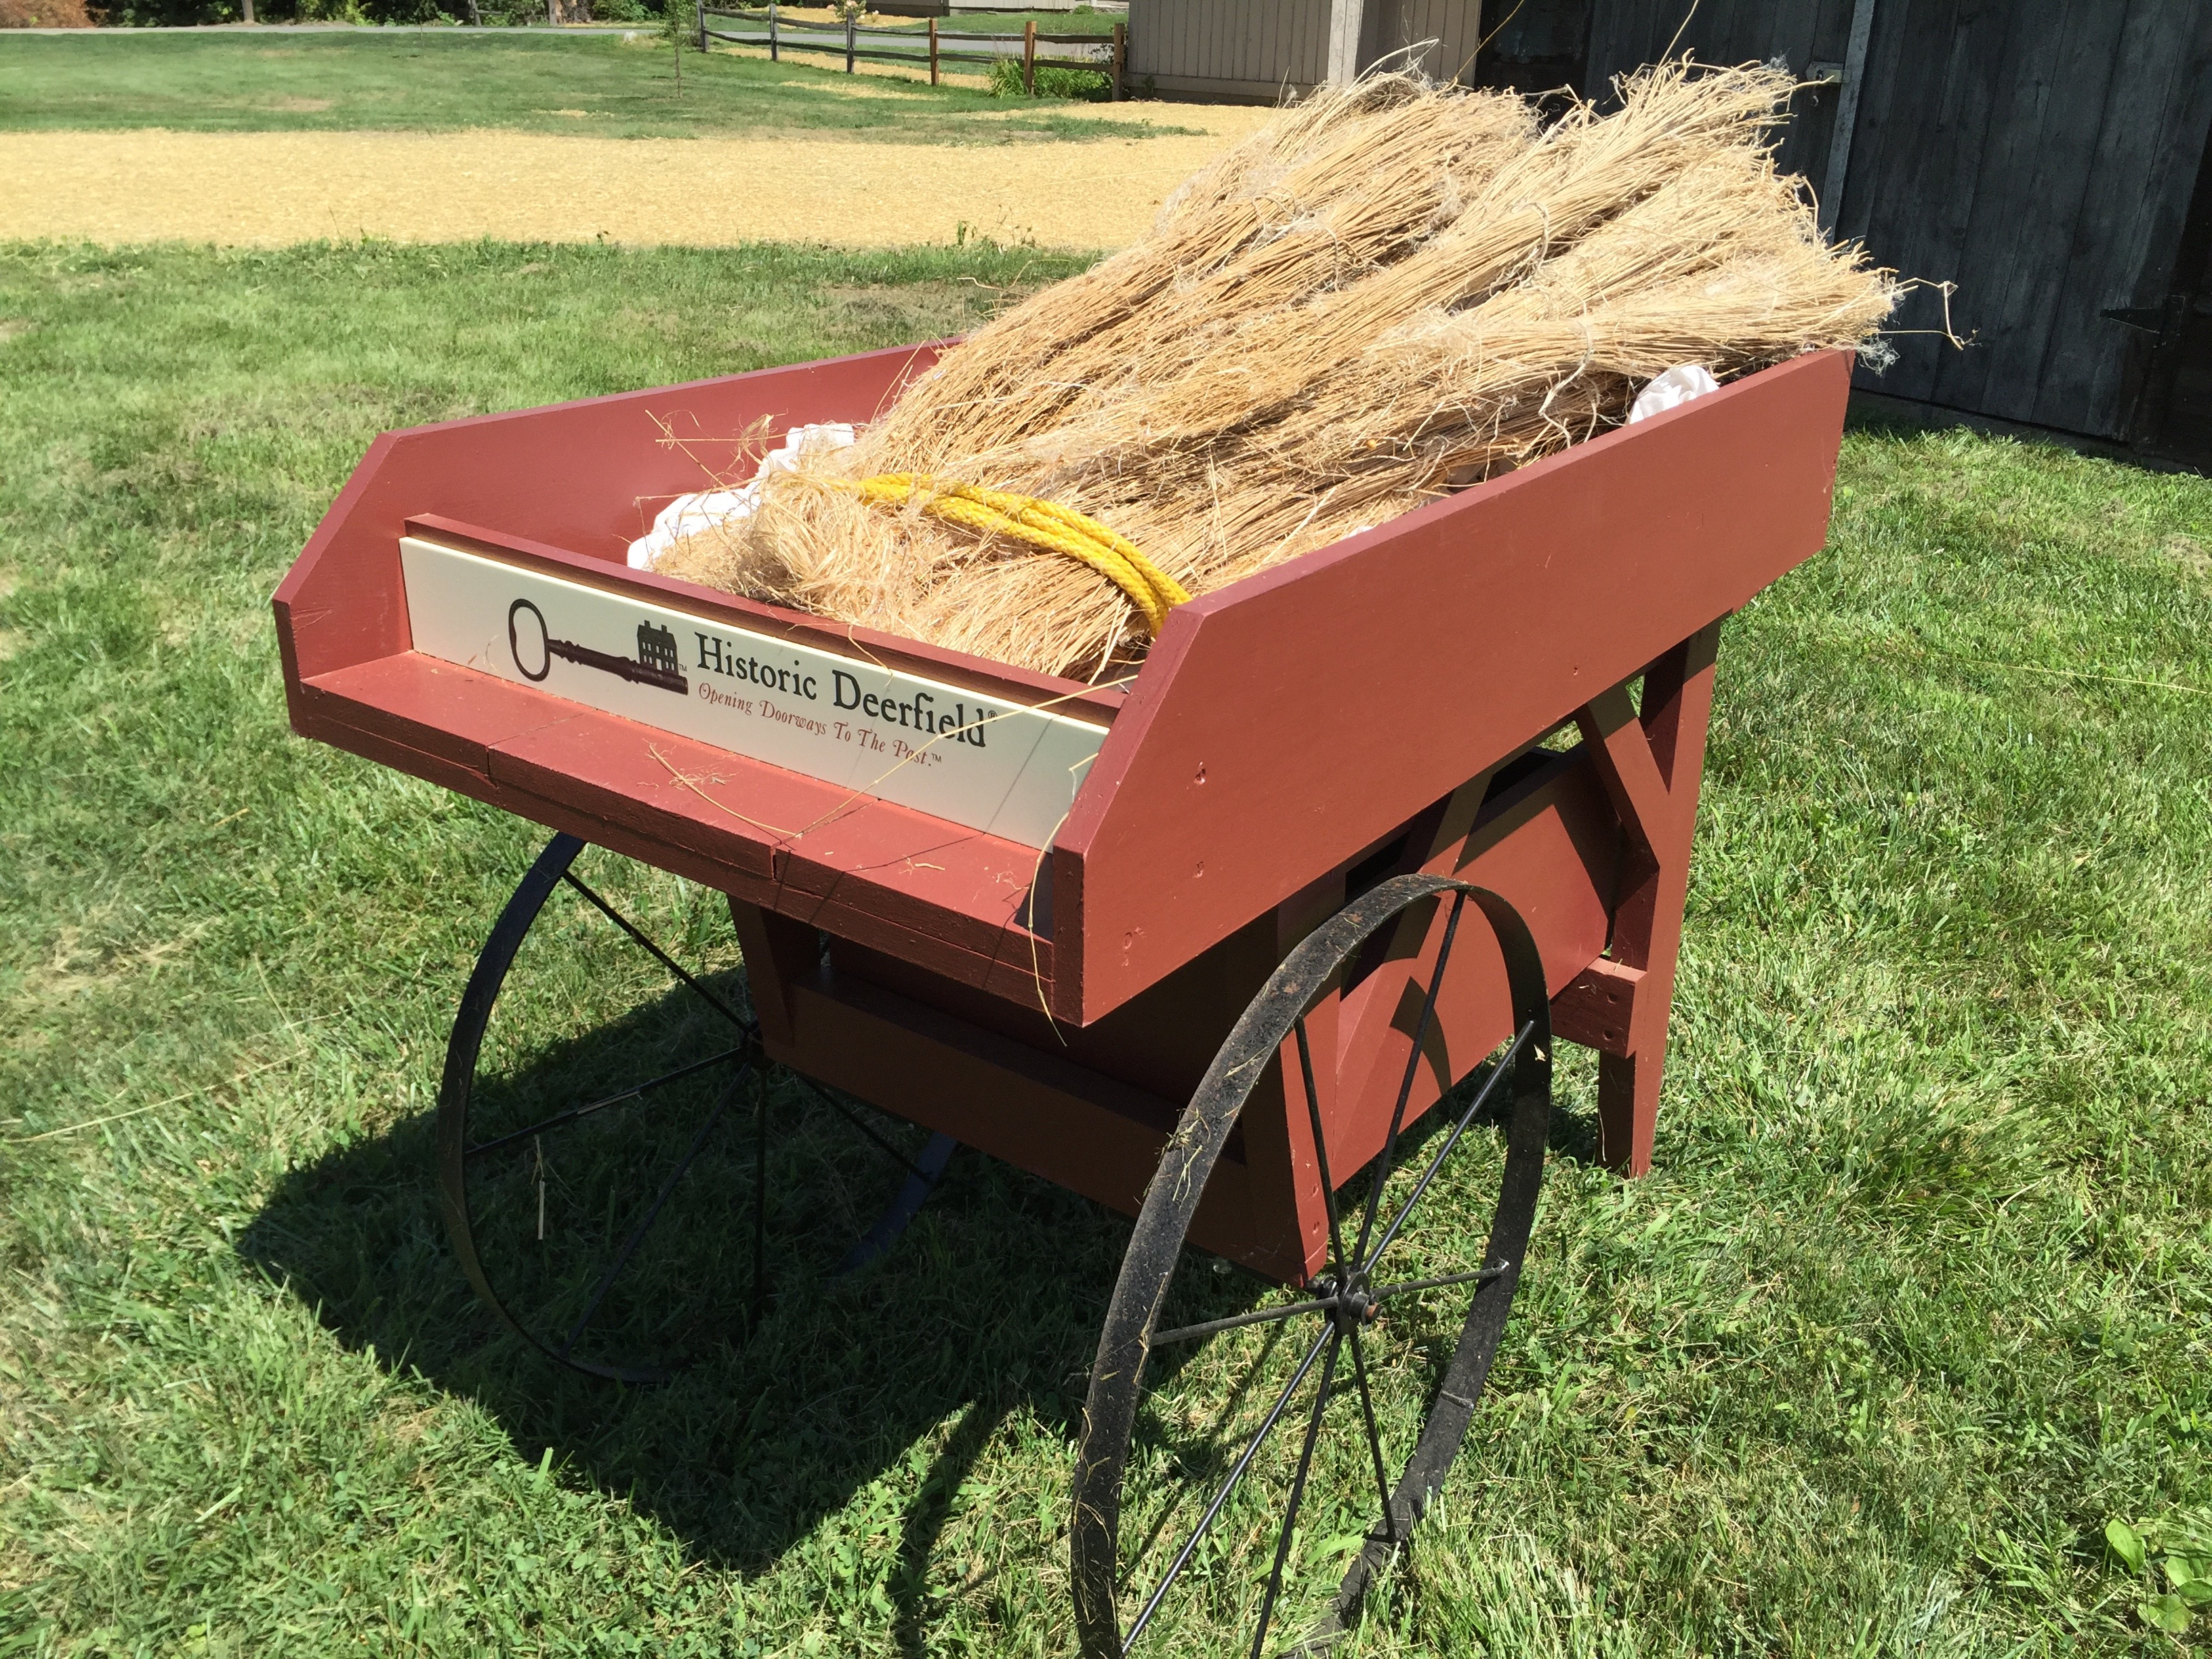 Photo of Historic Deerfield's cart at the Flax & Linen Symposium 2016